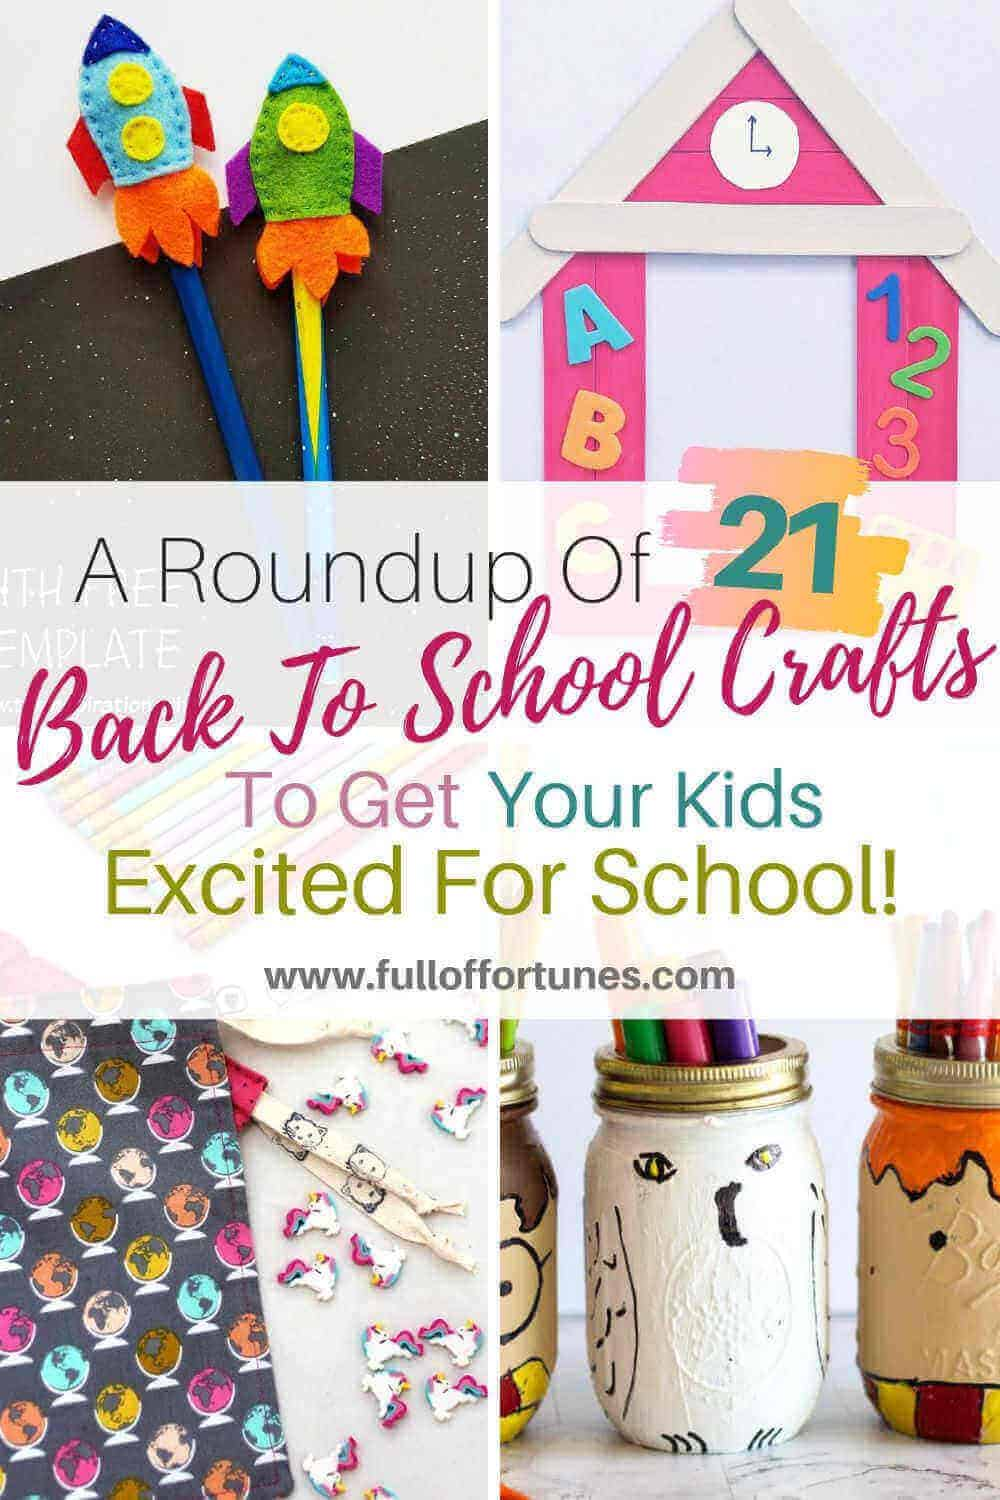 A Roundup of Back To School Crafts